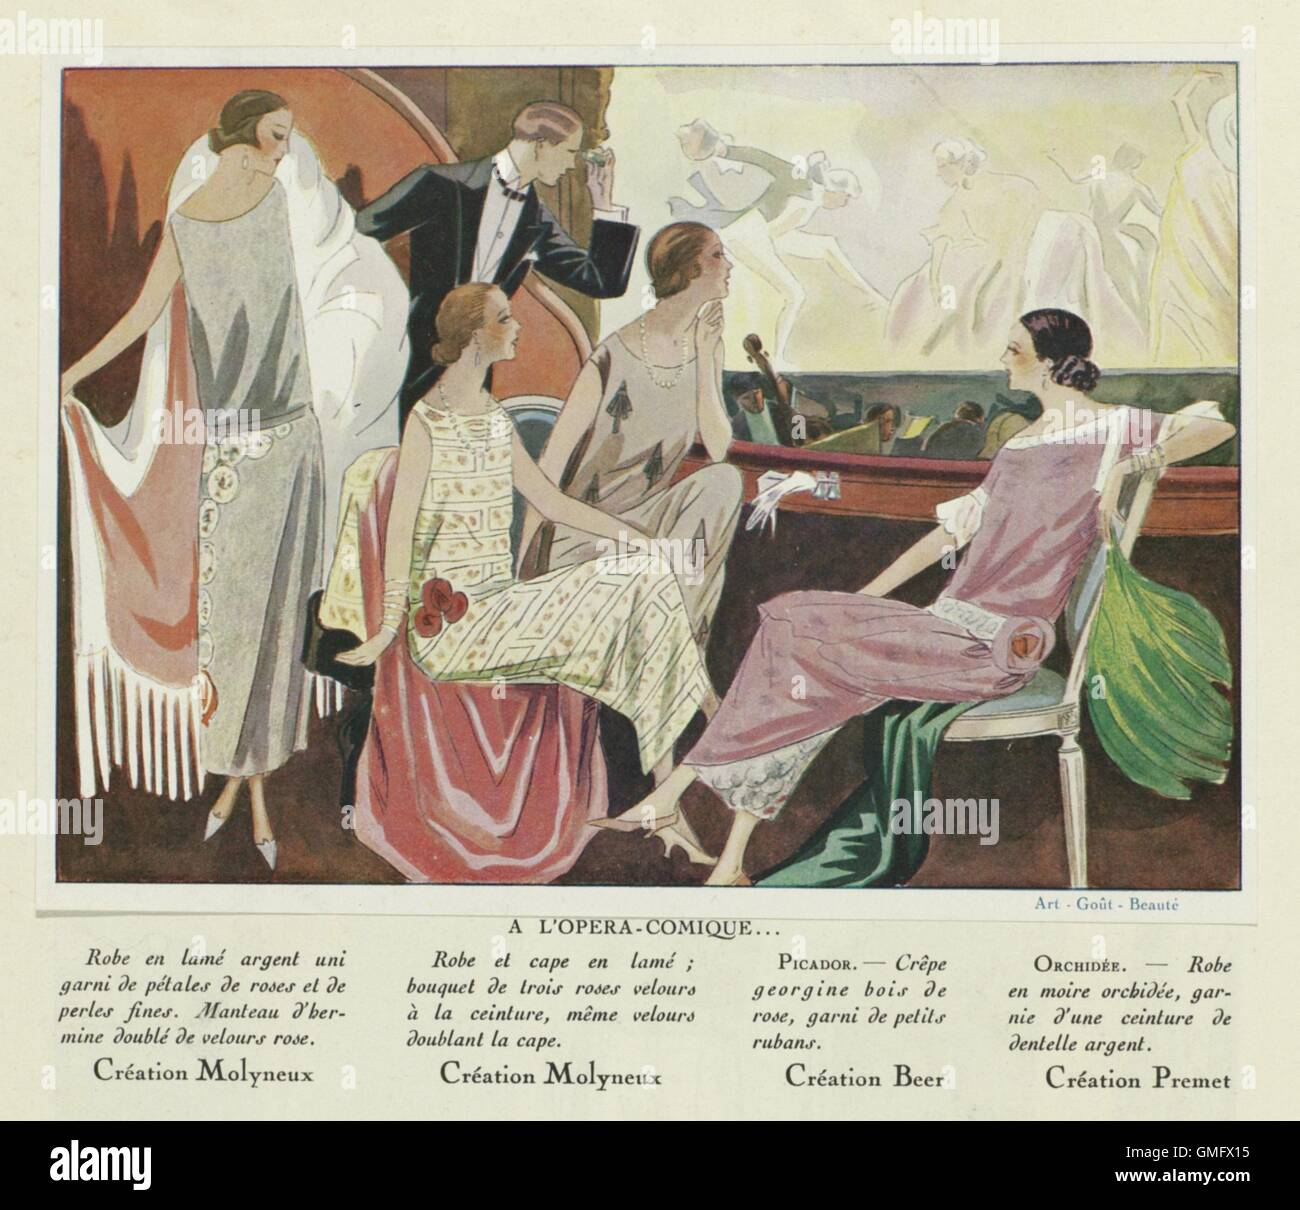 At the Comic Opera, by Anonymous, 1924, French magazine illustration (BSLOC_2016_2_121) - Stock Image